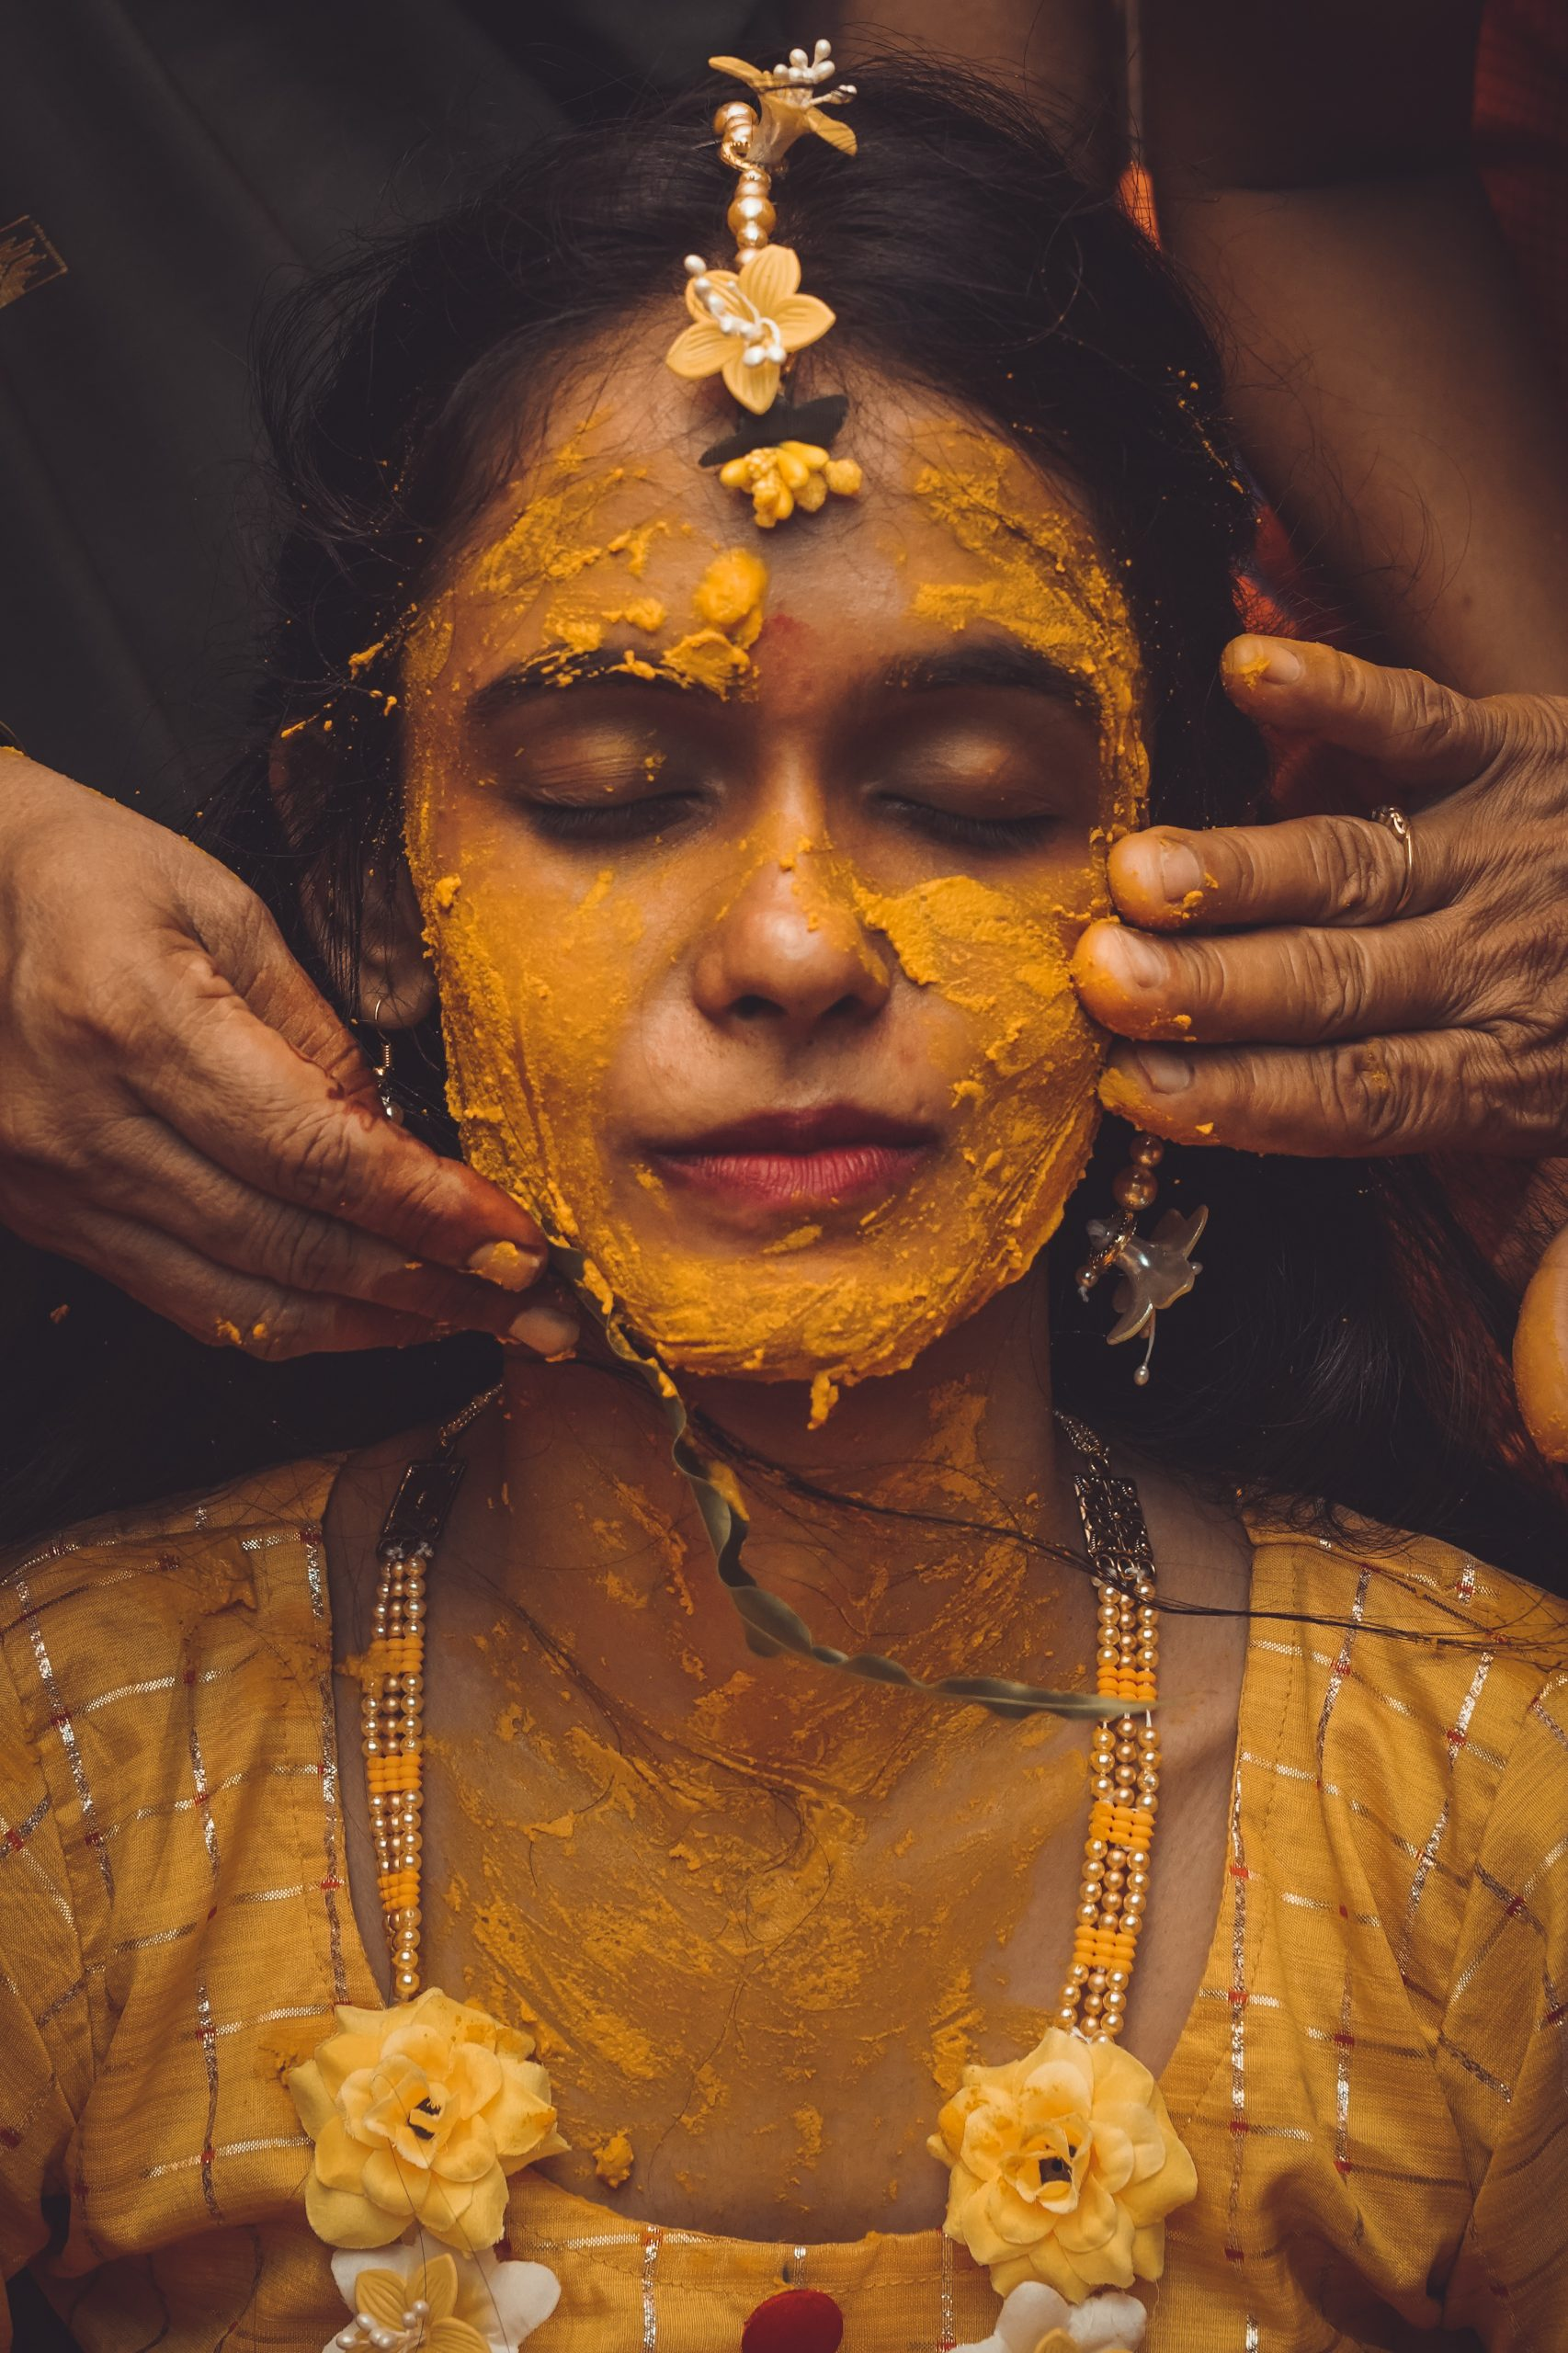 Haldi ceremony in an Indian wedding